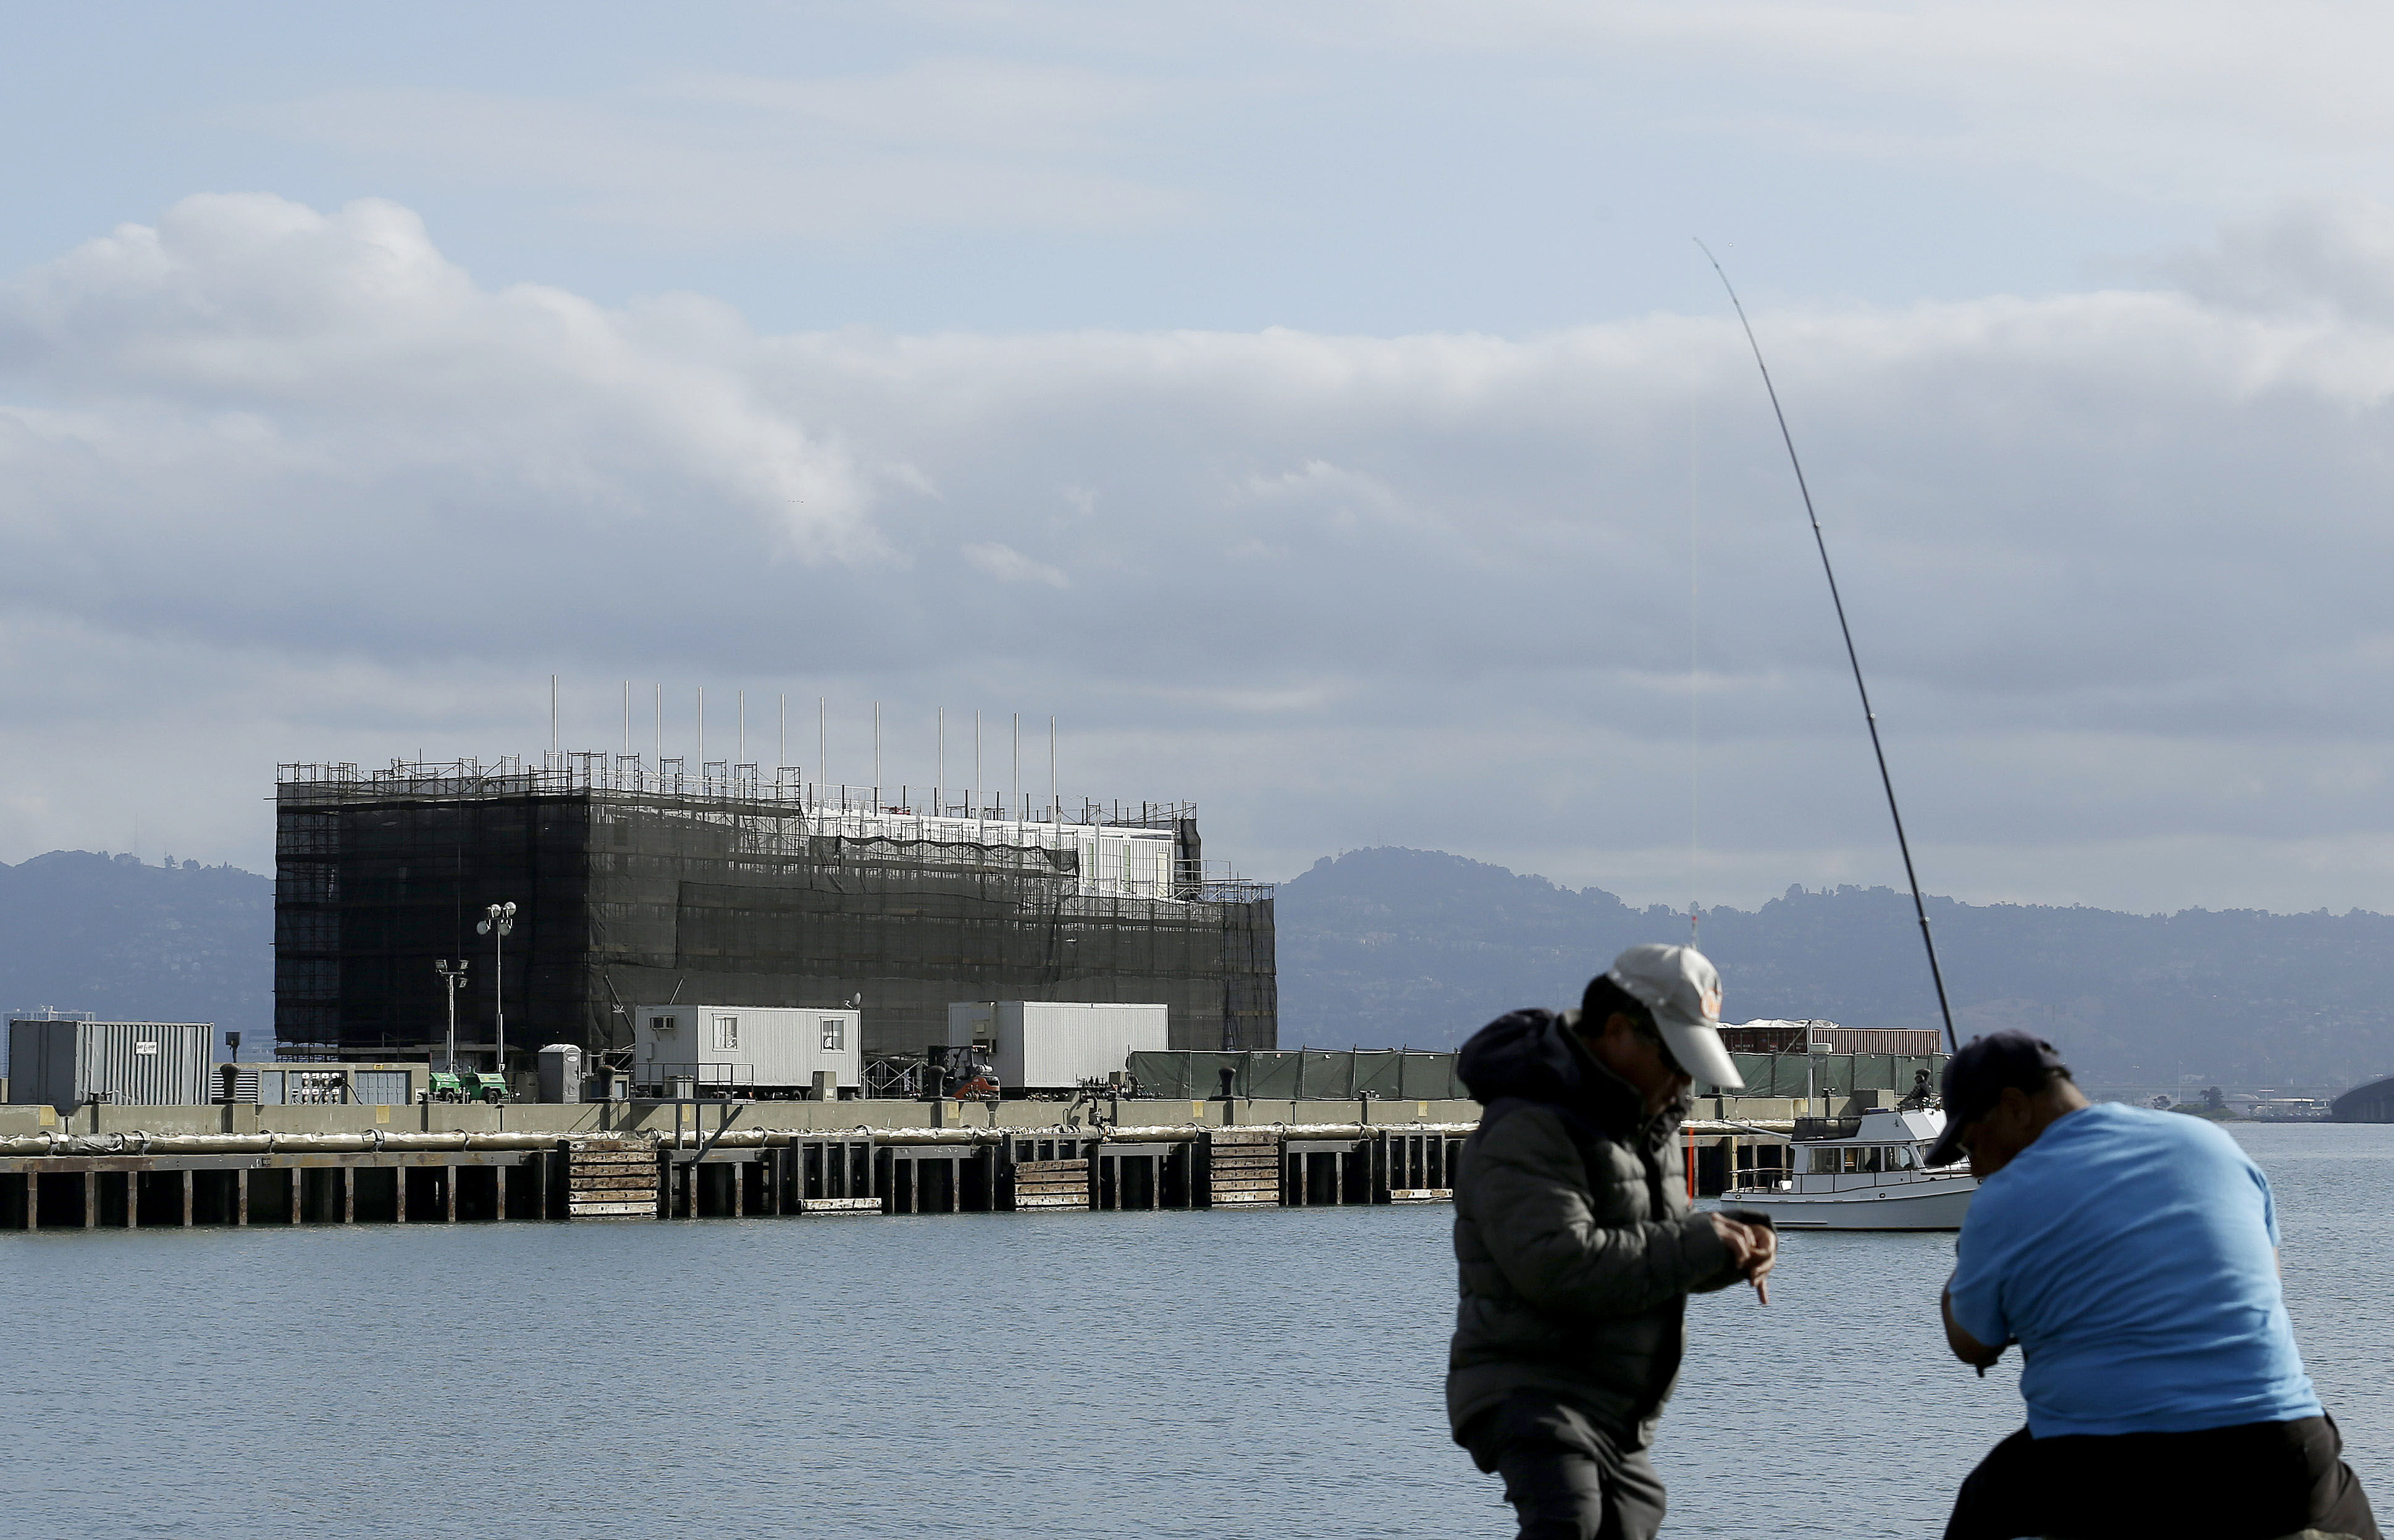 In this Tuesday, Oct. 29, 2013, file photo, two men fish in the water in front of a Google barge on Treasure Island in San Francisco. The barge portion of the Google barge mystery is only half the story.